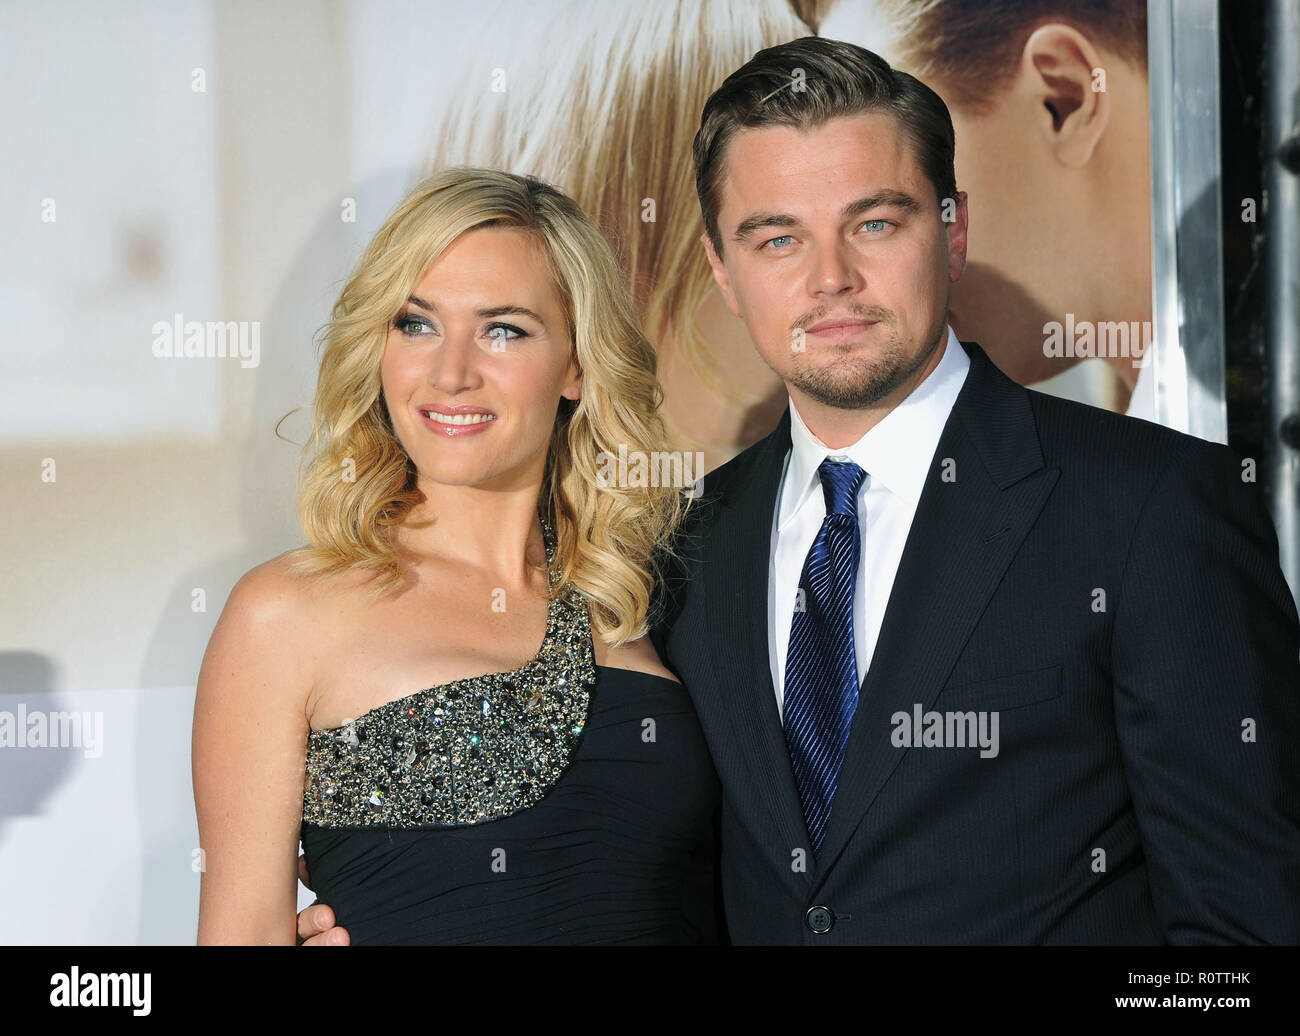 Kate Winslet And Leonardo Dicaprio Revolutionary Road Premiere At The Westwood Village In Los Angeles Winsletkate Dicapriole Stock Photo Alamy